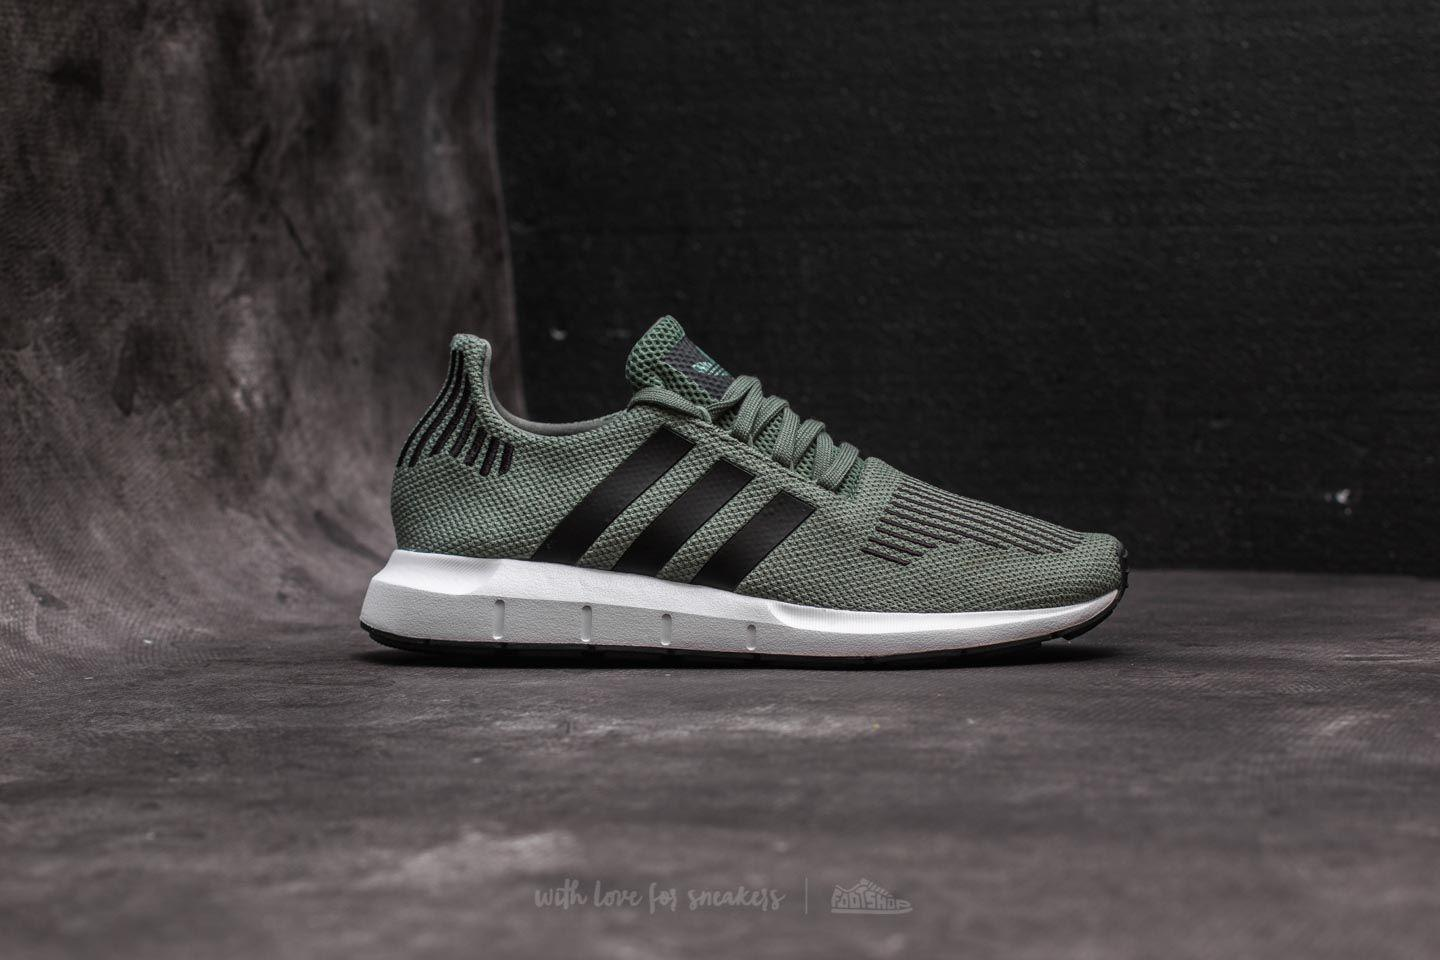 a8dbe5ef6a5ea ... Lyst - Adidas Originals Adidas Swift Run J Trace Green Core Black ... adidas  Men ...